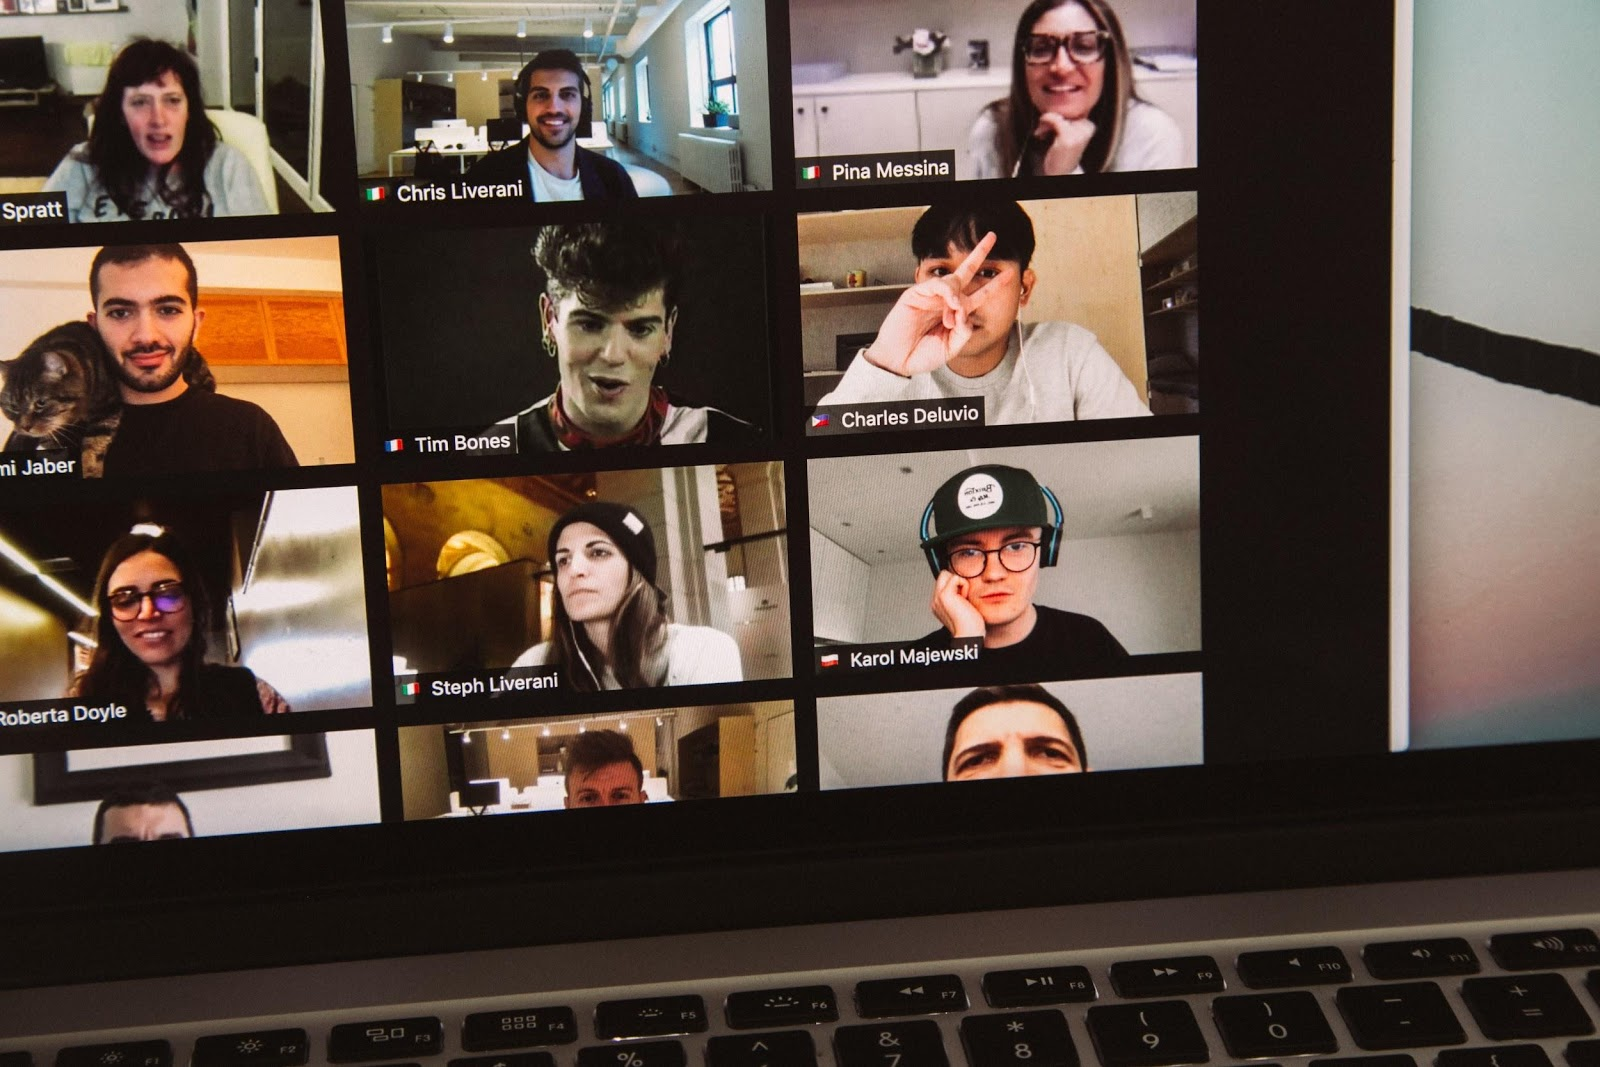 How to Make Your Virtual Conferences More Efficient